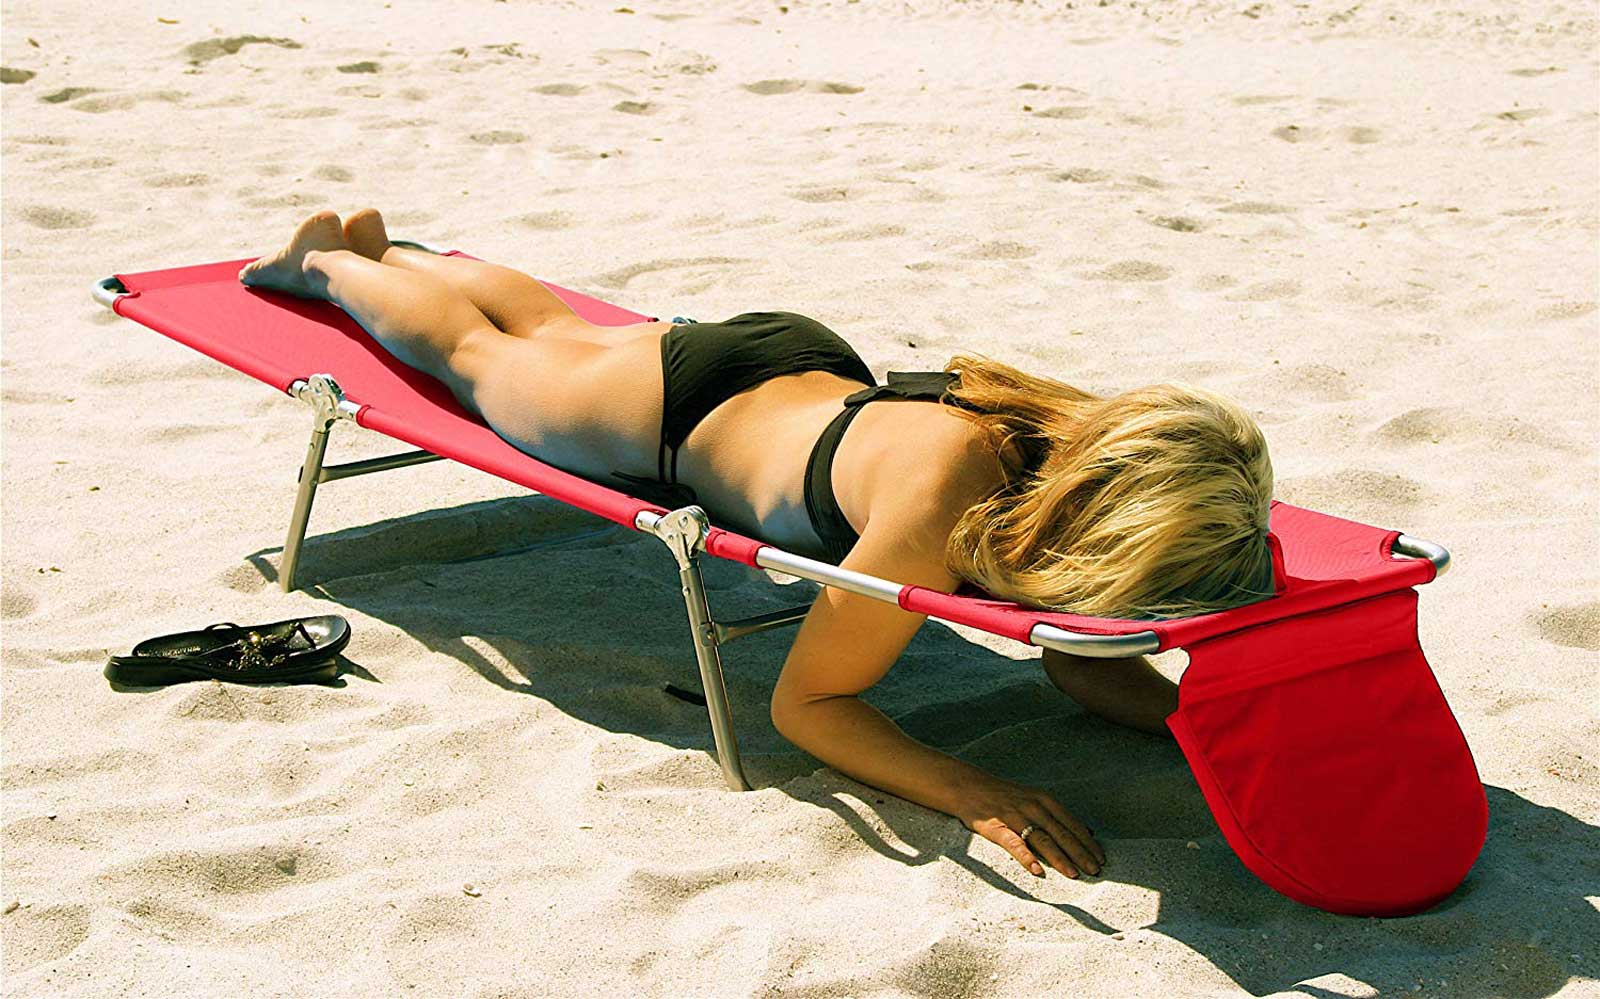 Beach lounge chair for reading